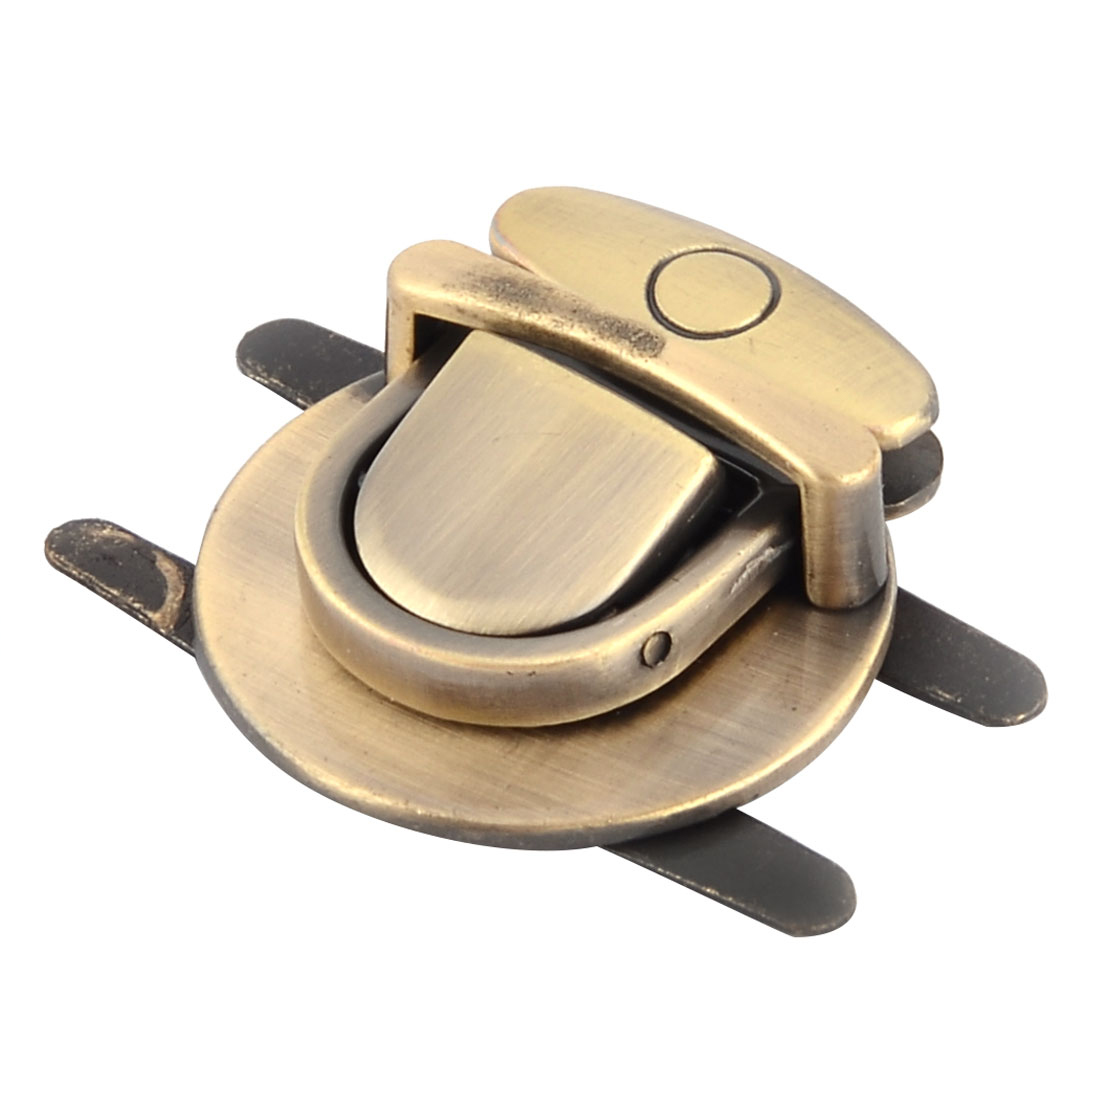 Handbag Clothing Accessory Metal Round Shaped Removable Lock Bronze Tone